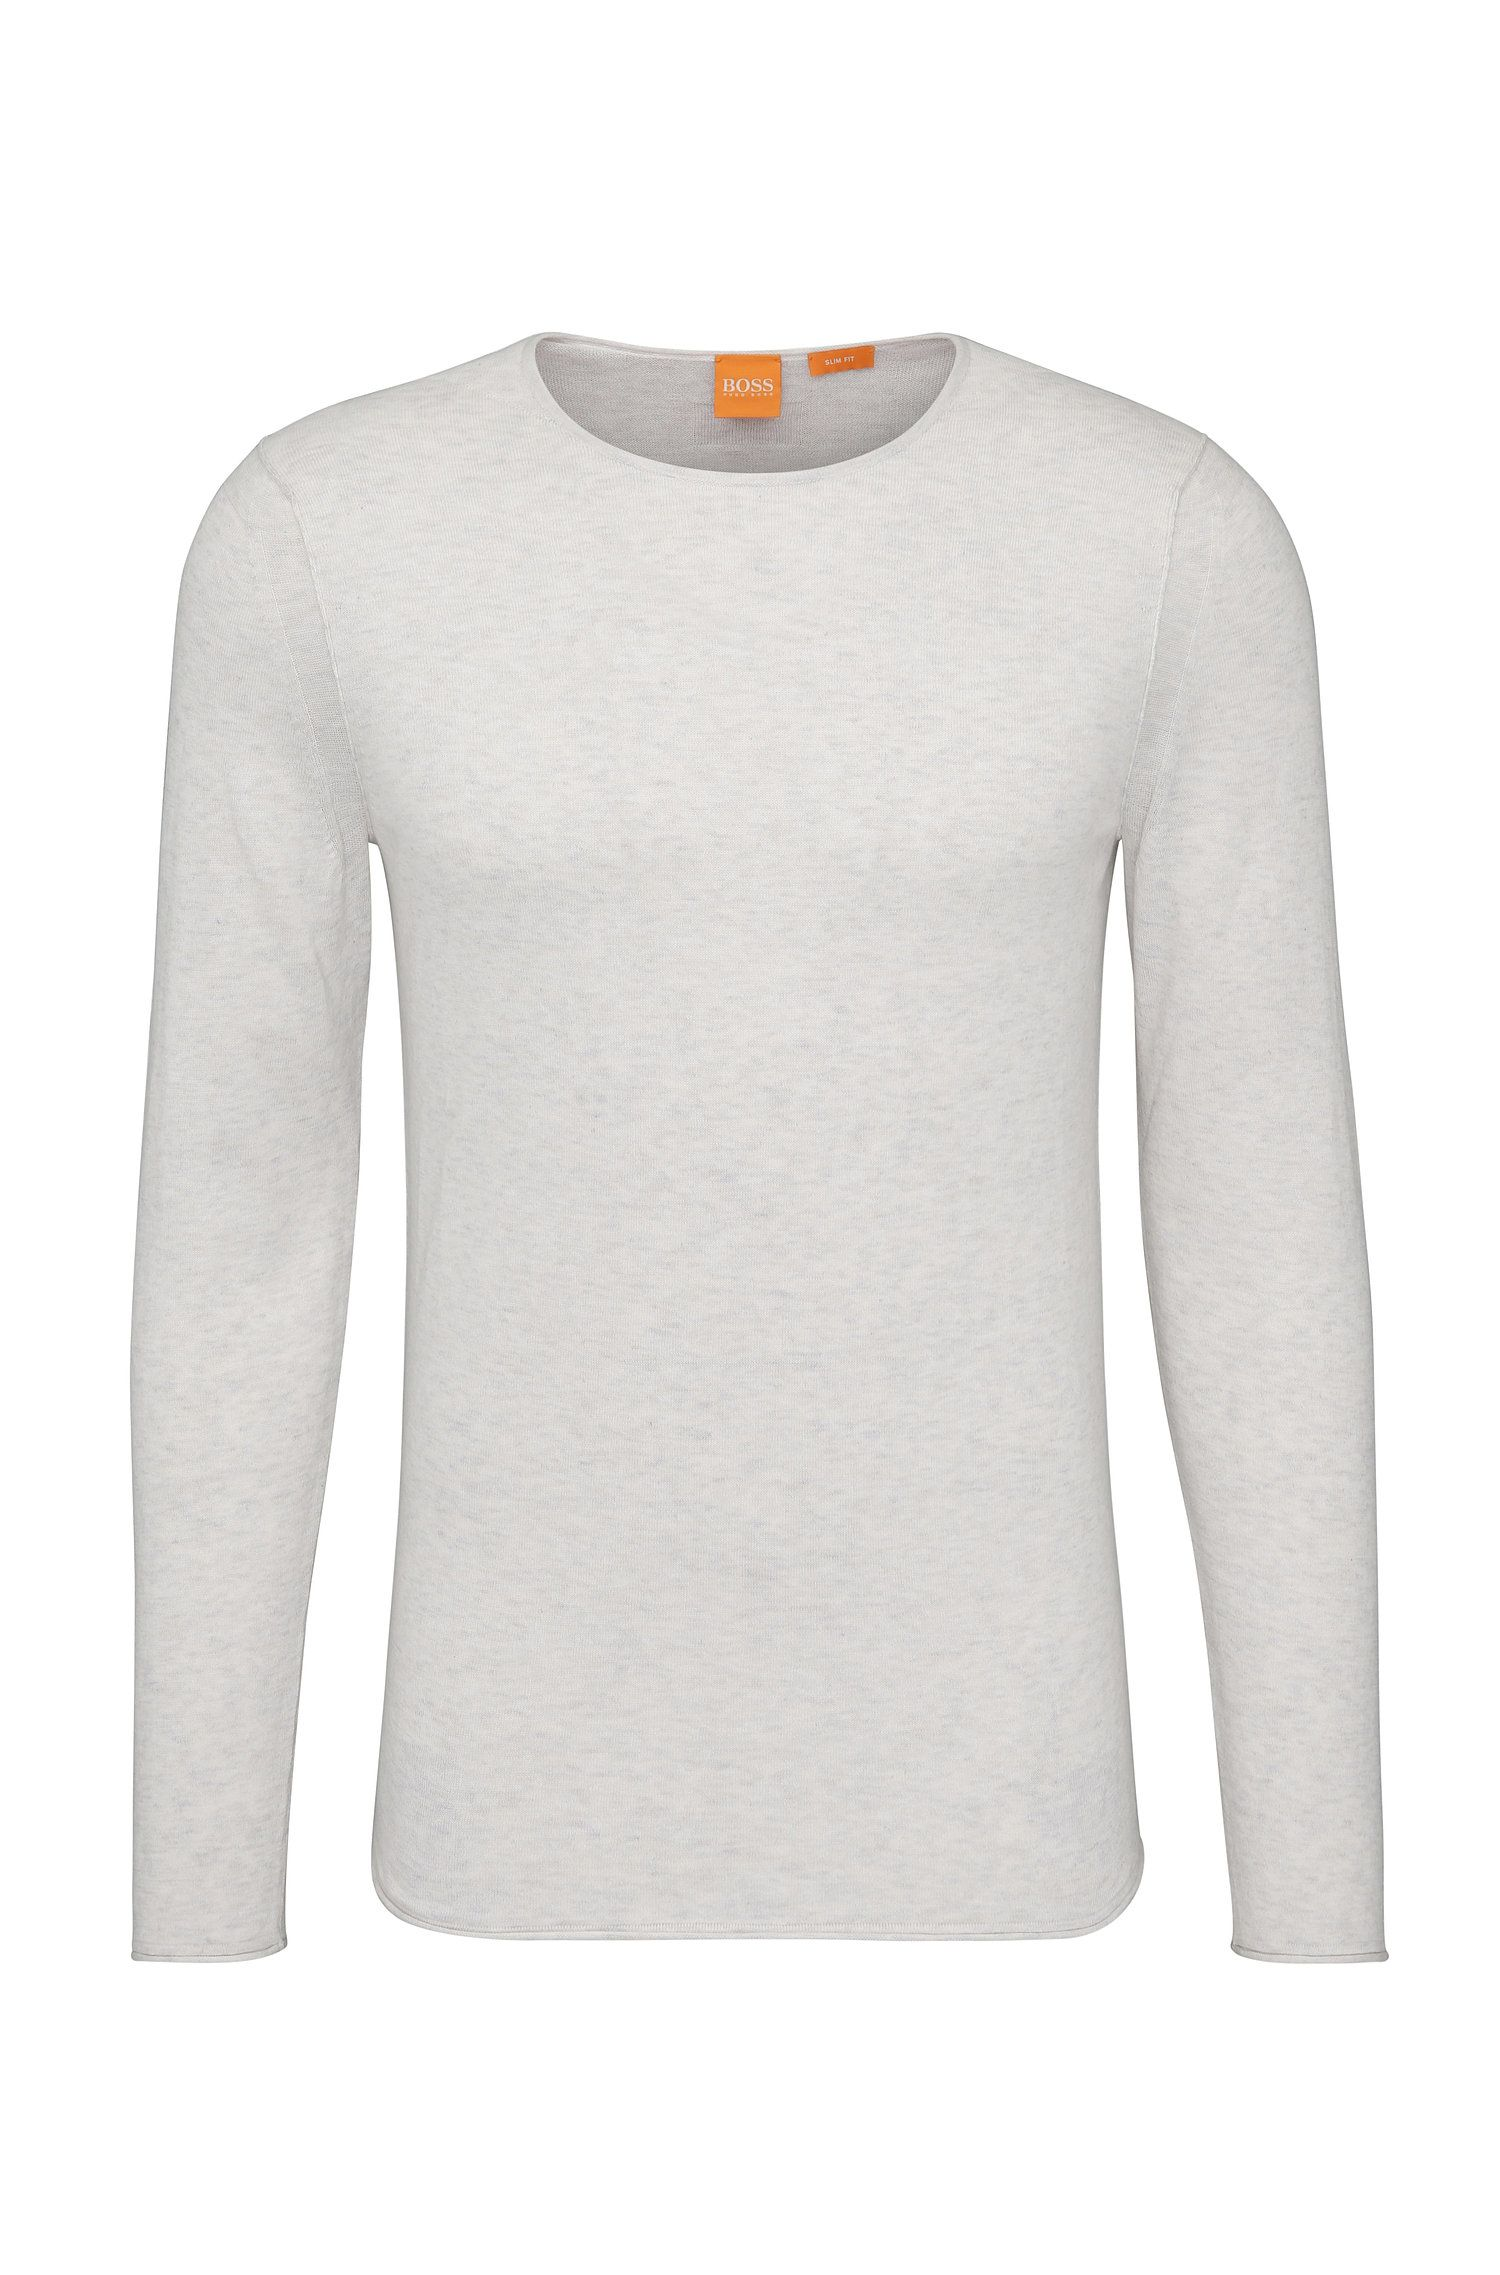 Knitwear sweater in cotton: 'Kwameros'